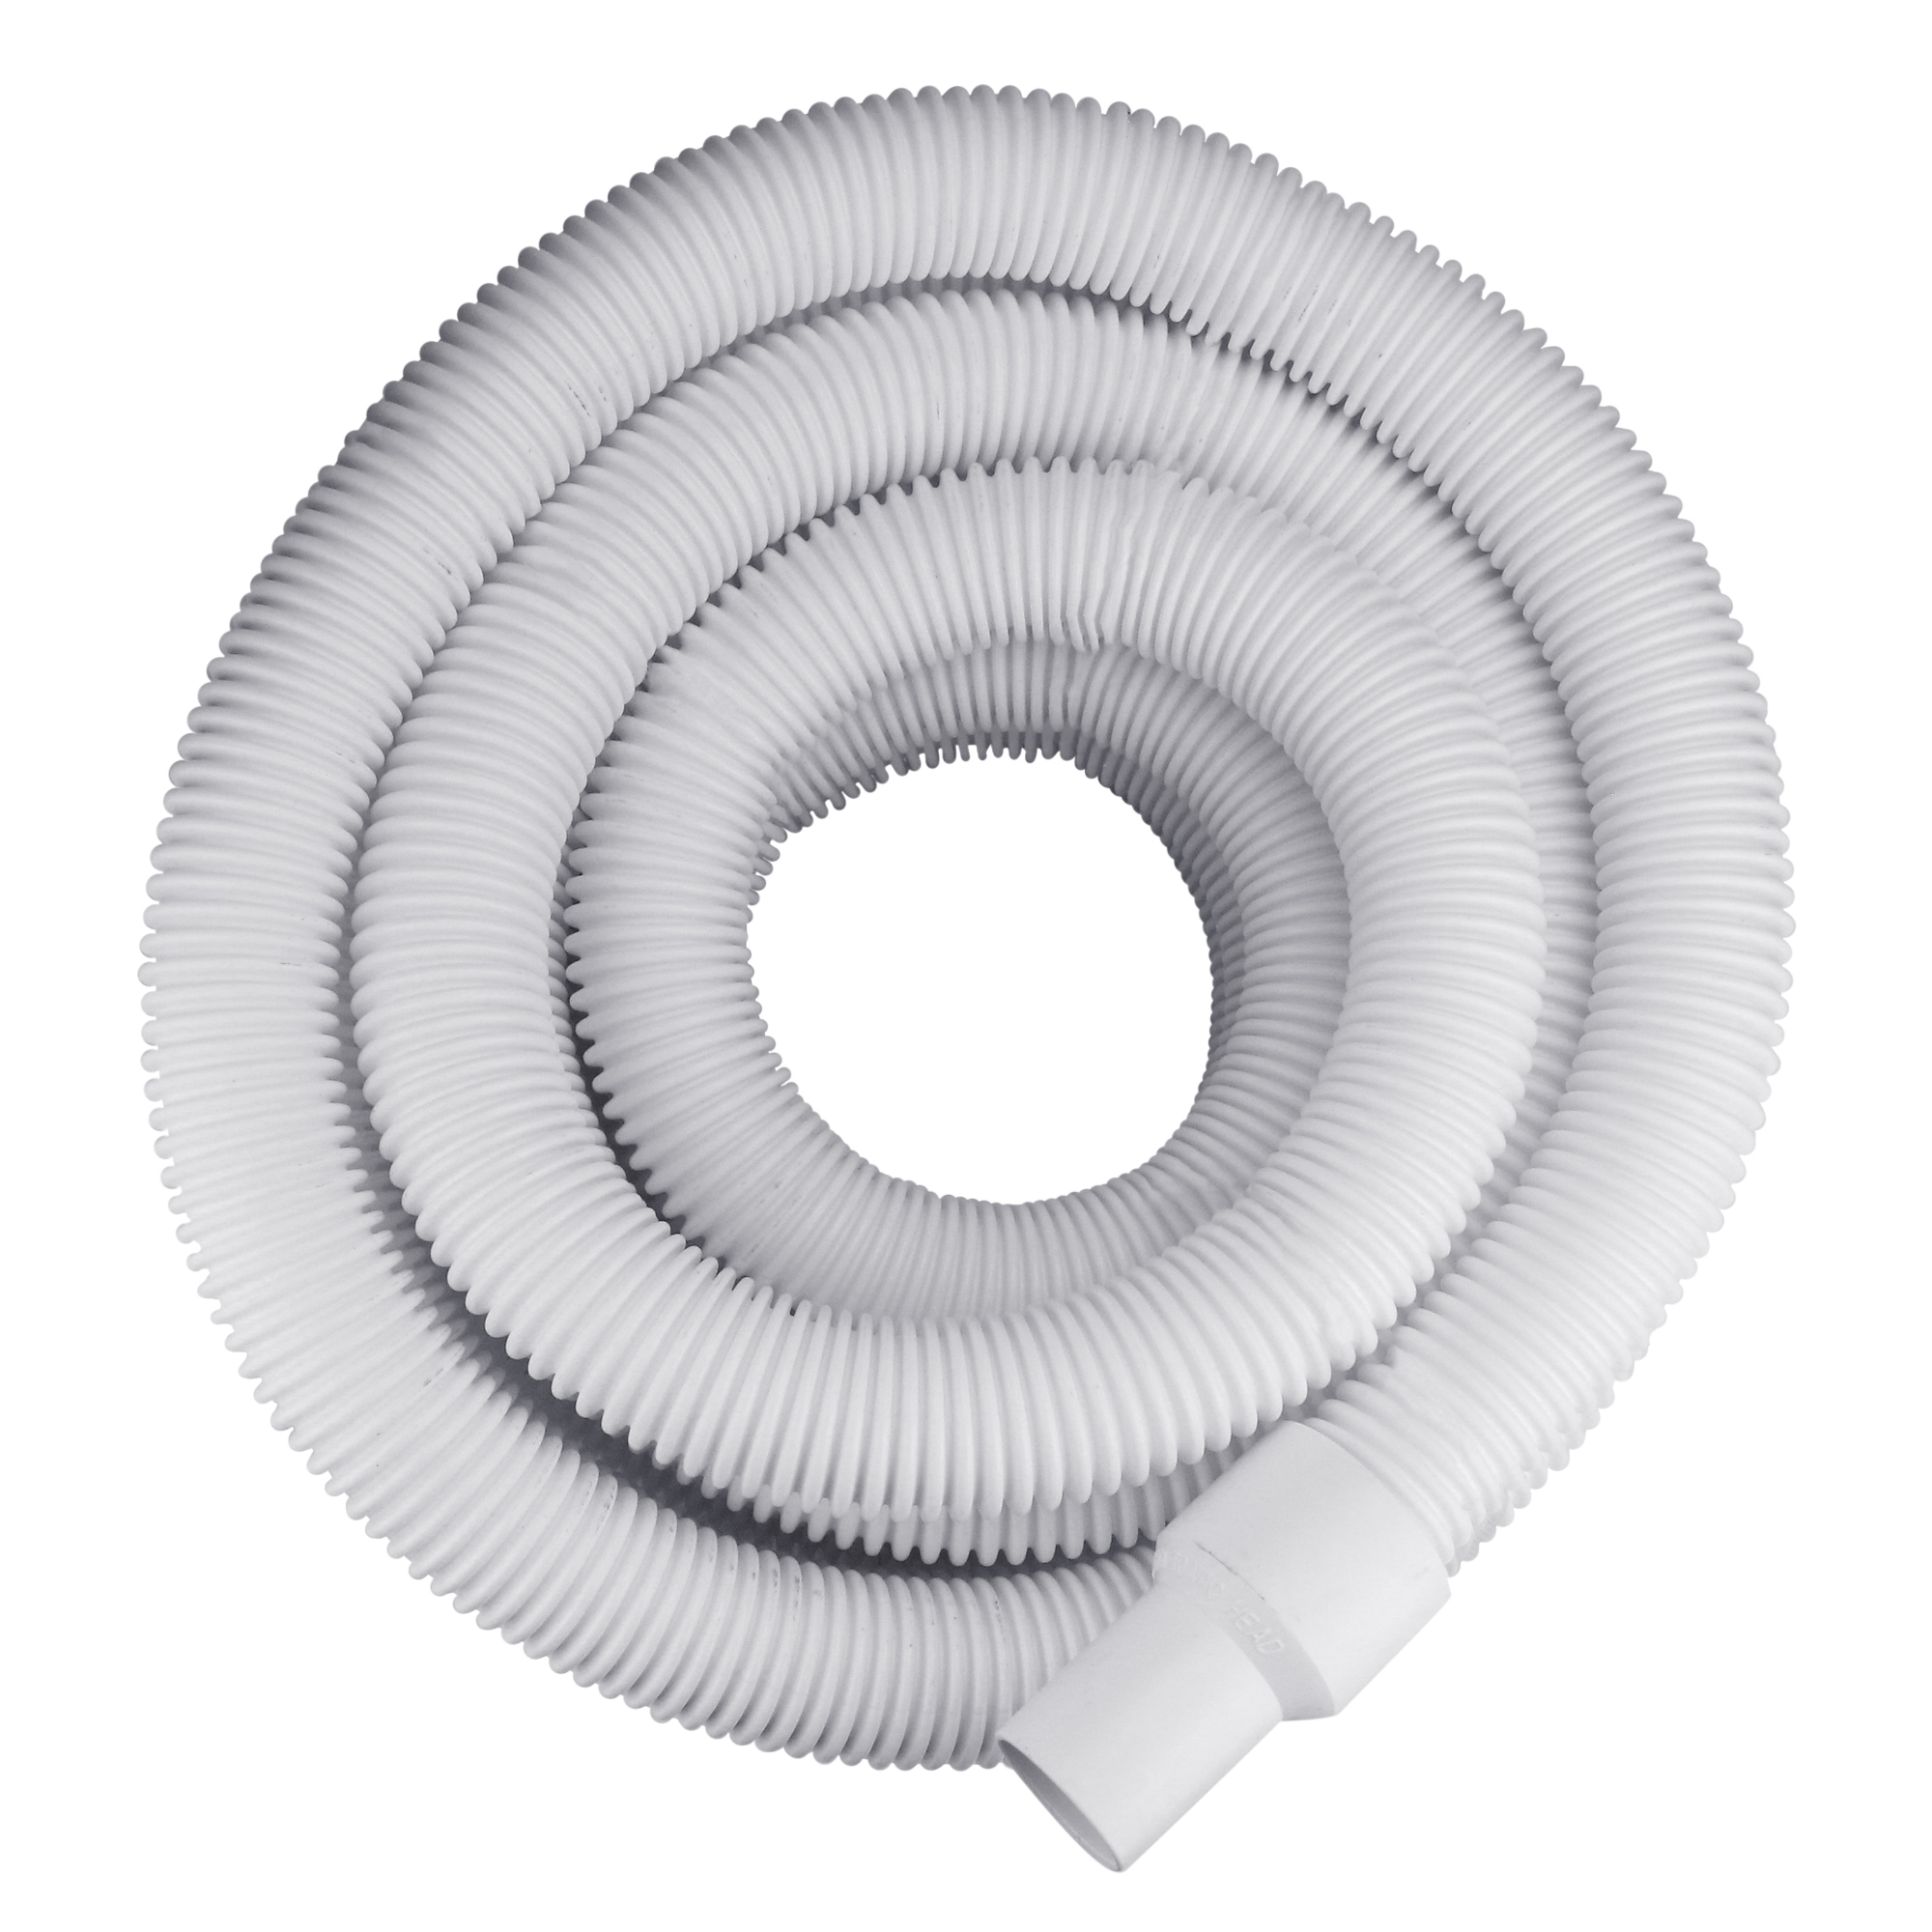 """White Blow-Molded LDPE In-Ground Swimming Pool Hose - 35' x 1.5"""""""